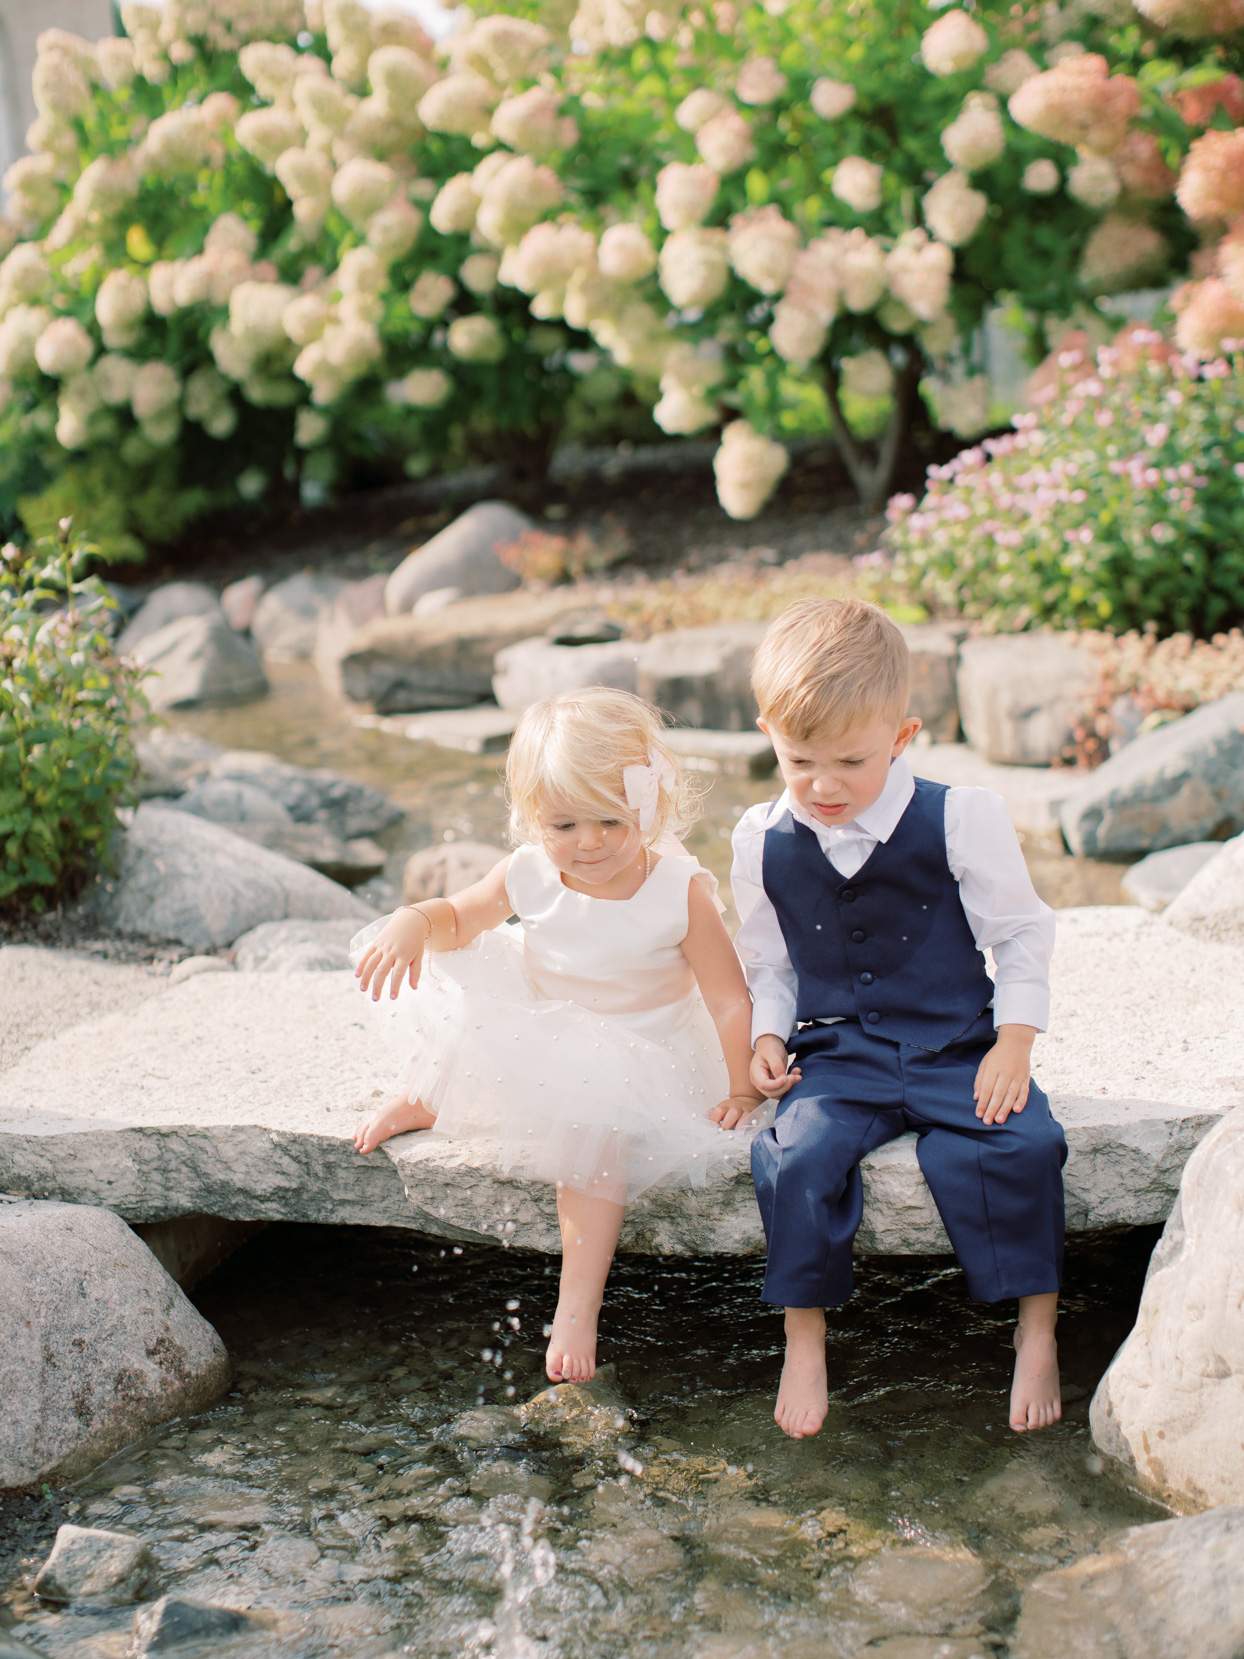 children with feet in water at wedding